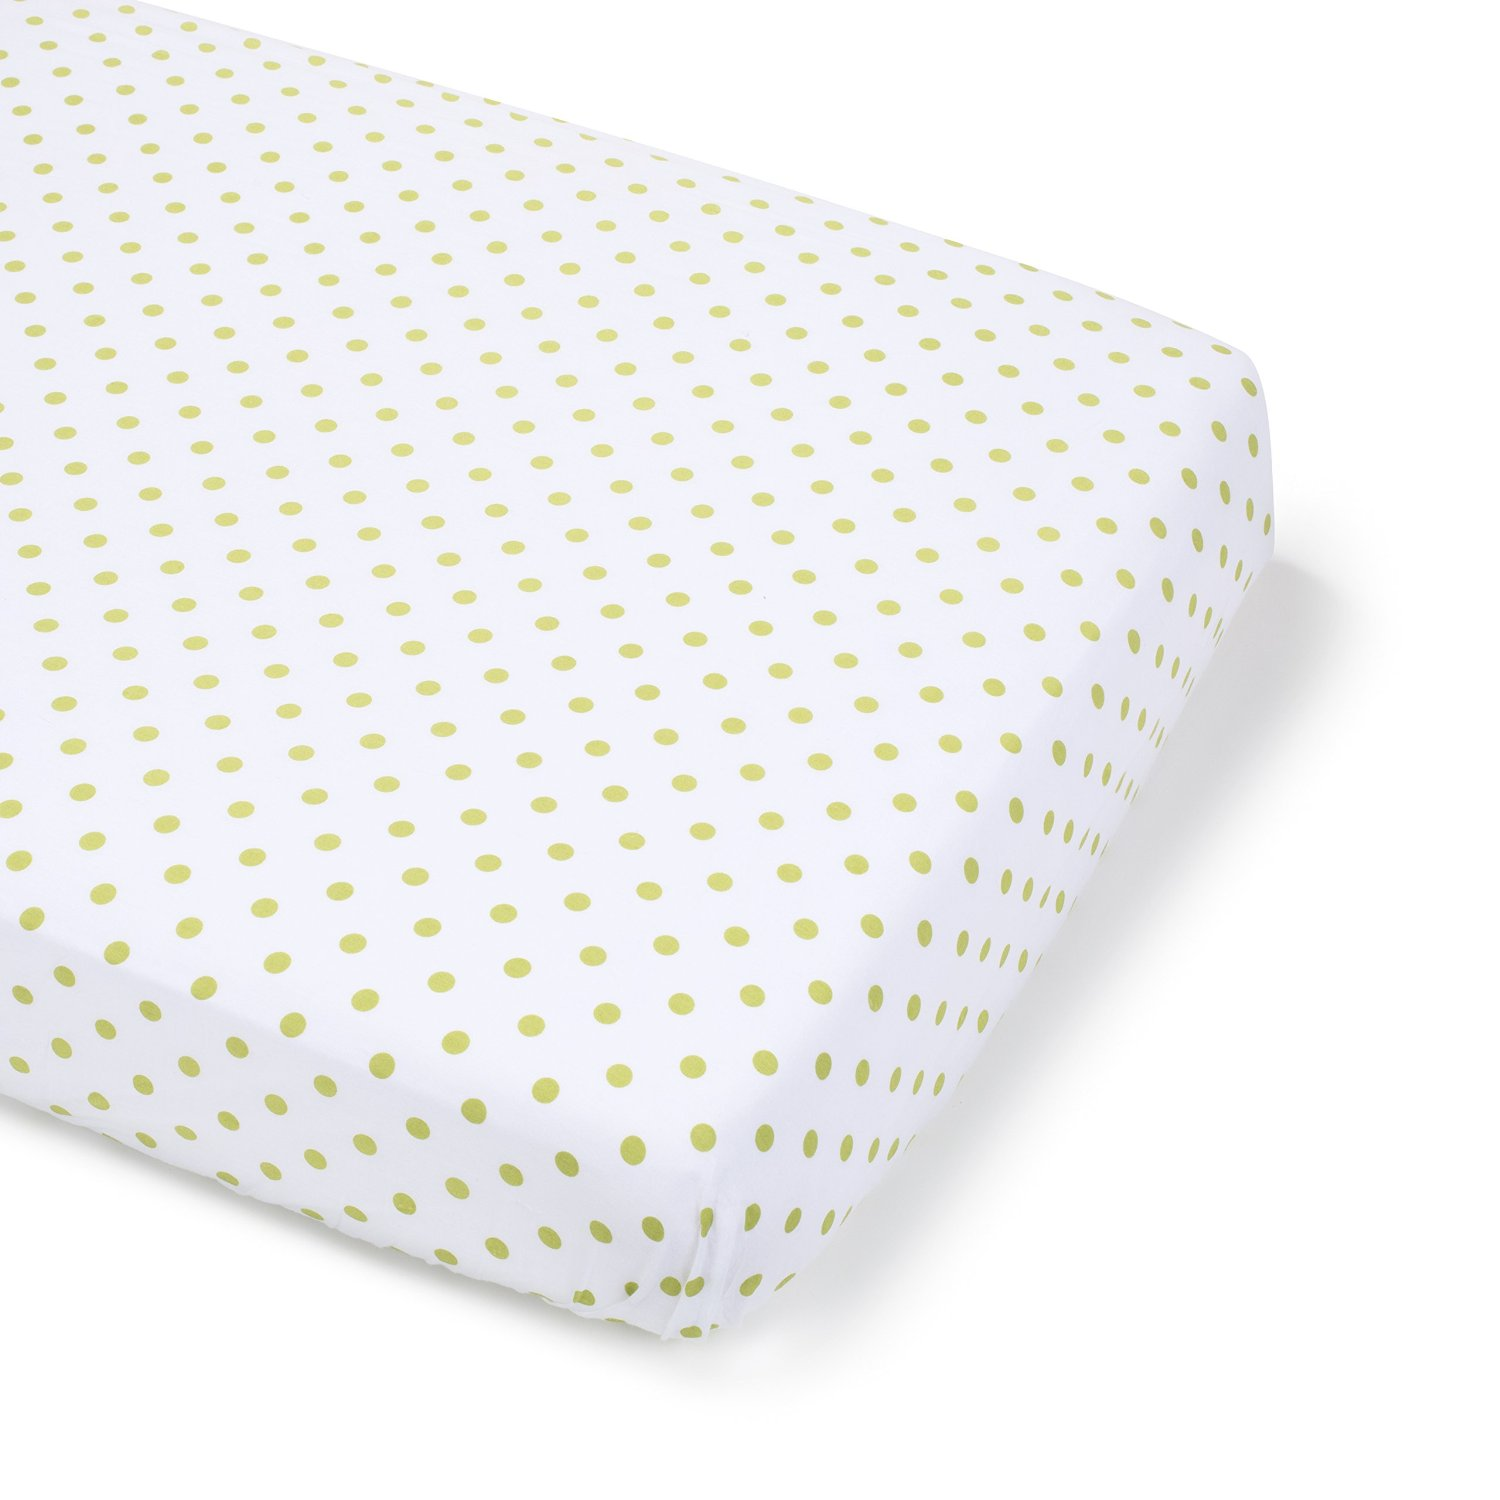 Summer Infant Full Size Crib Sheet - Green Polka Dot